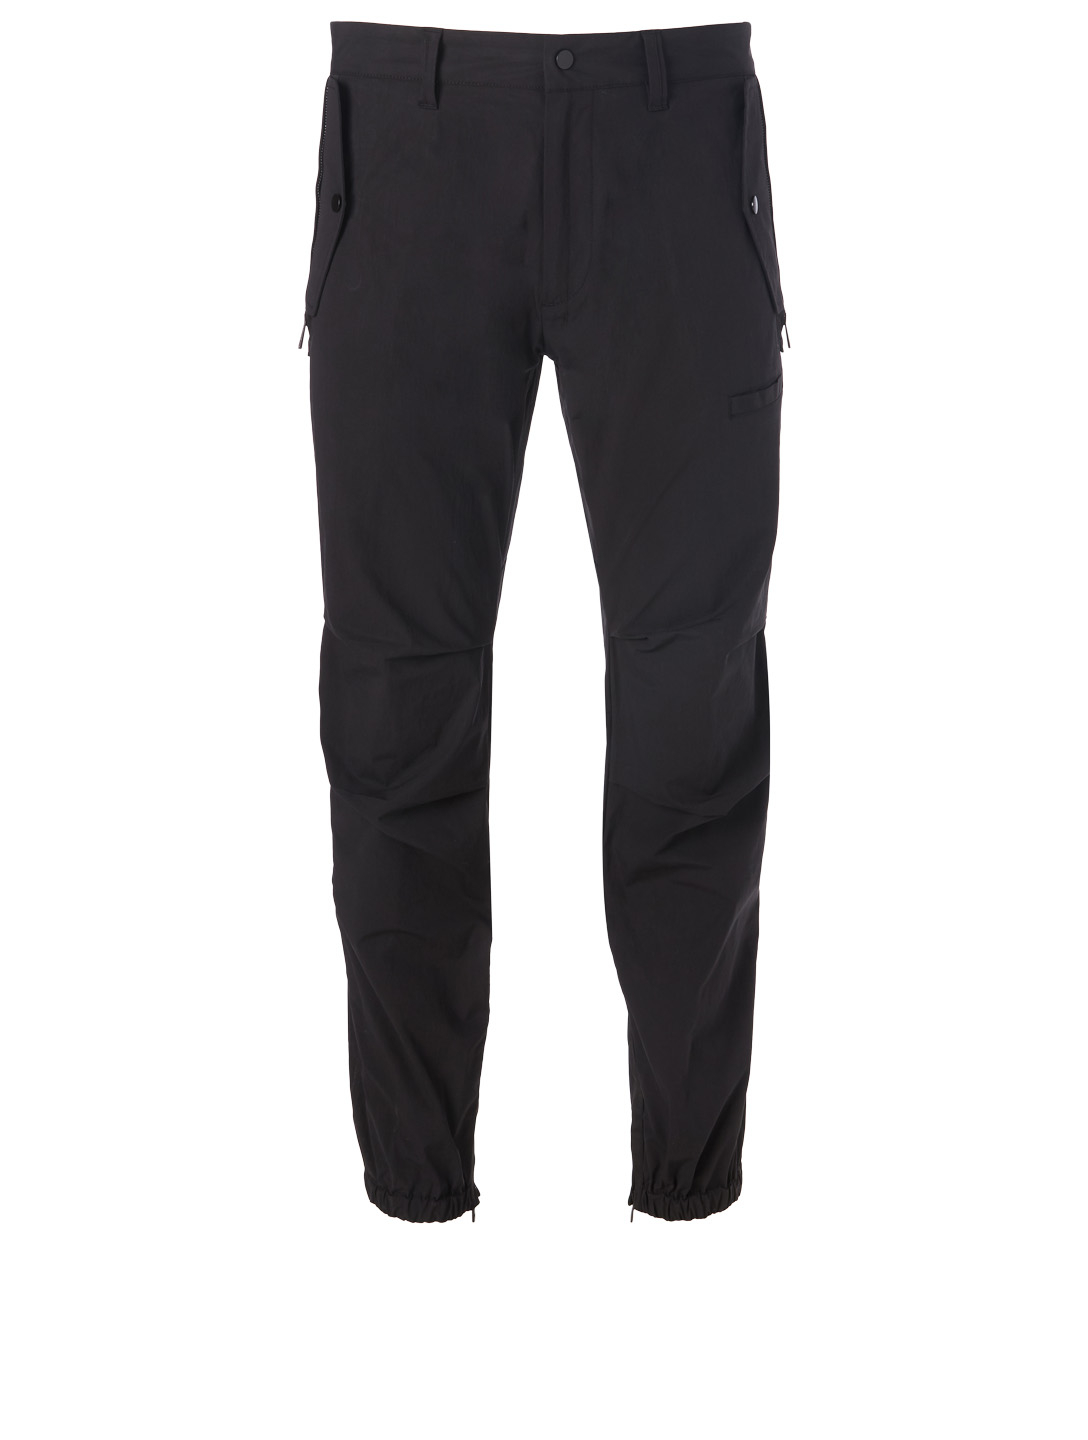 afff8811bd94a MONCLER Stretch-Cotton Pants Men's Black ...